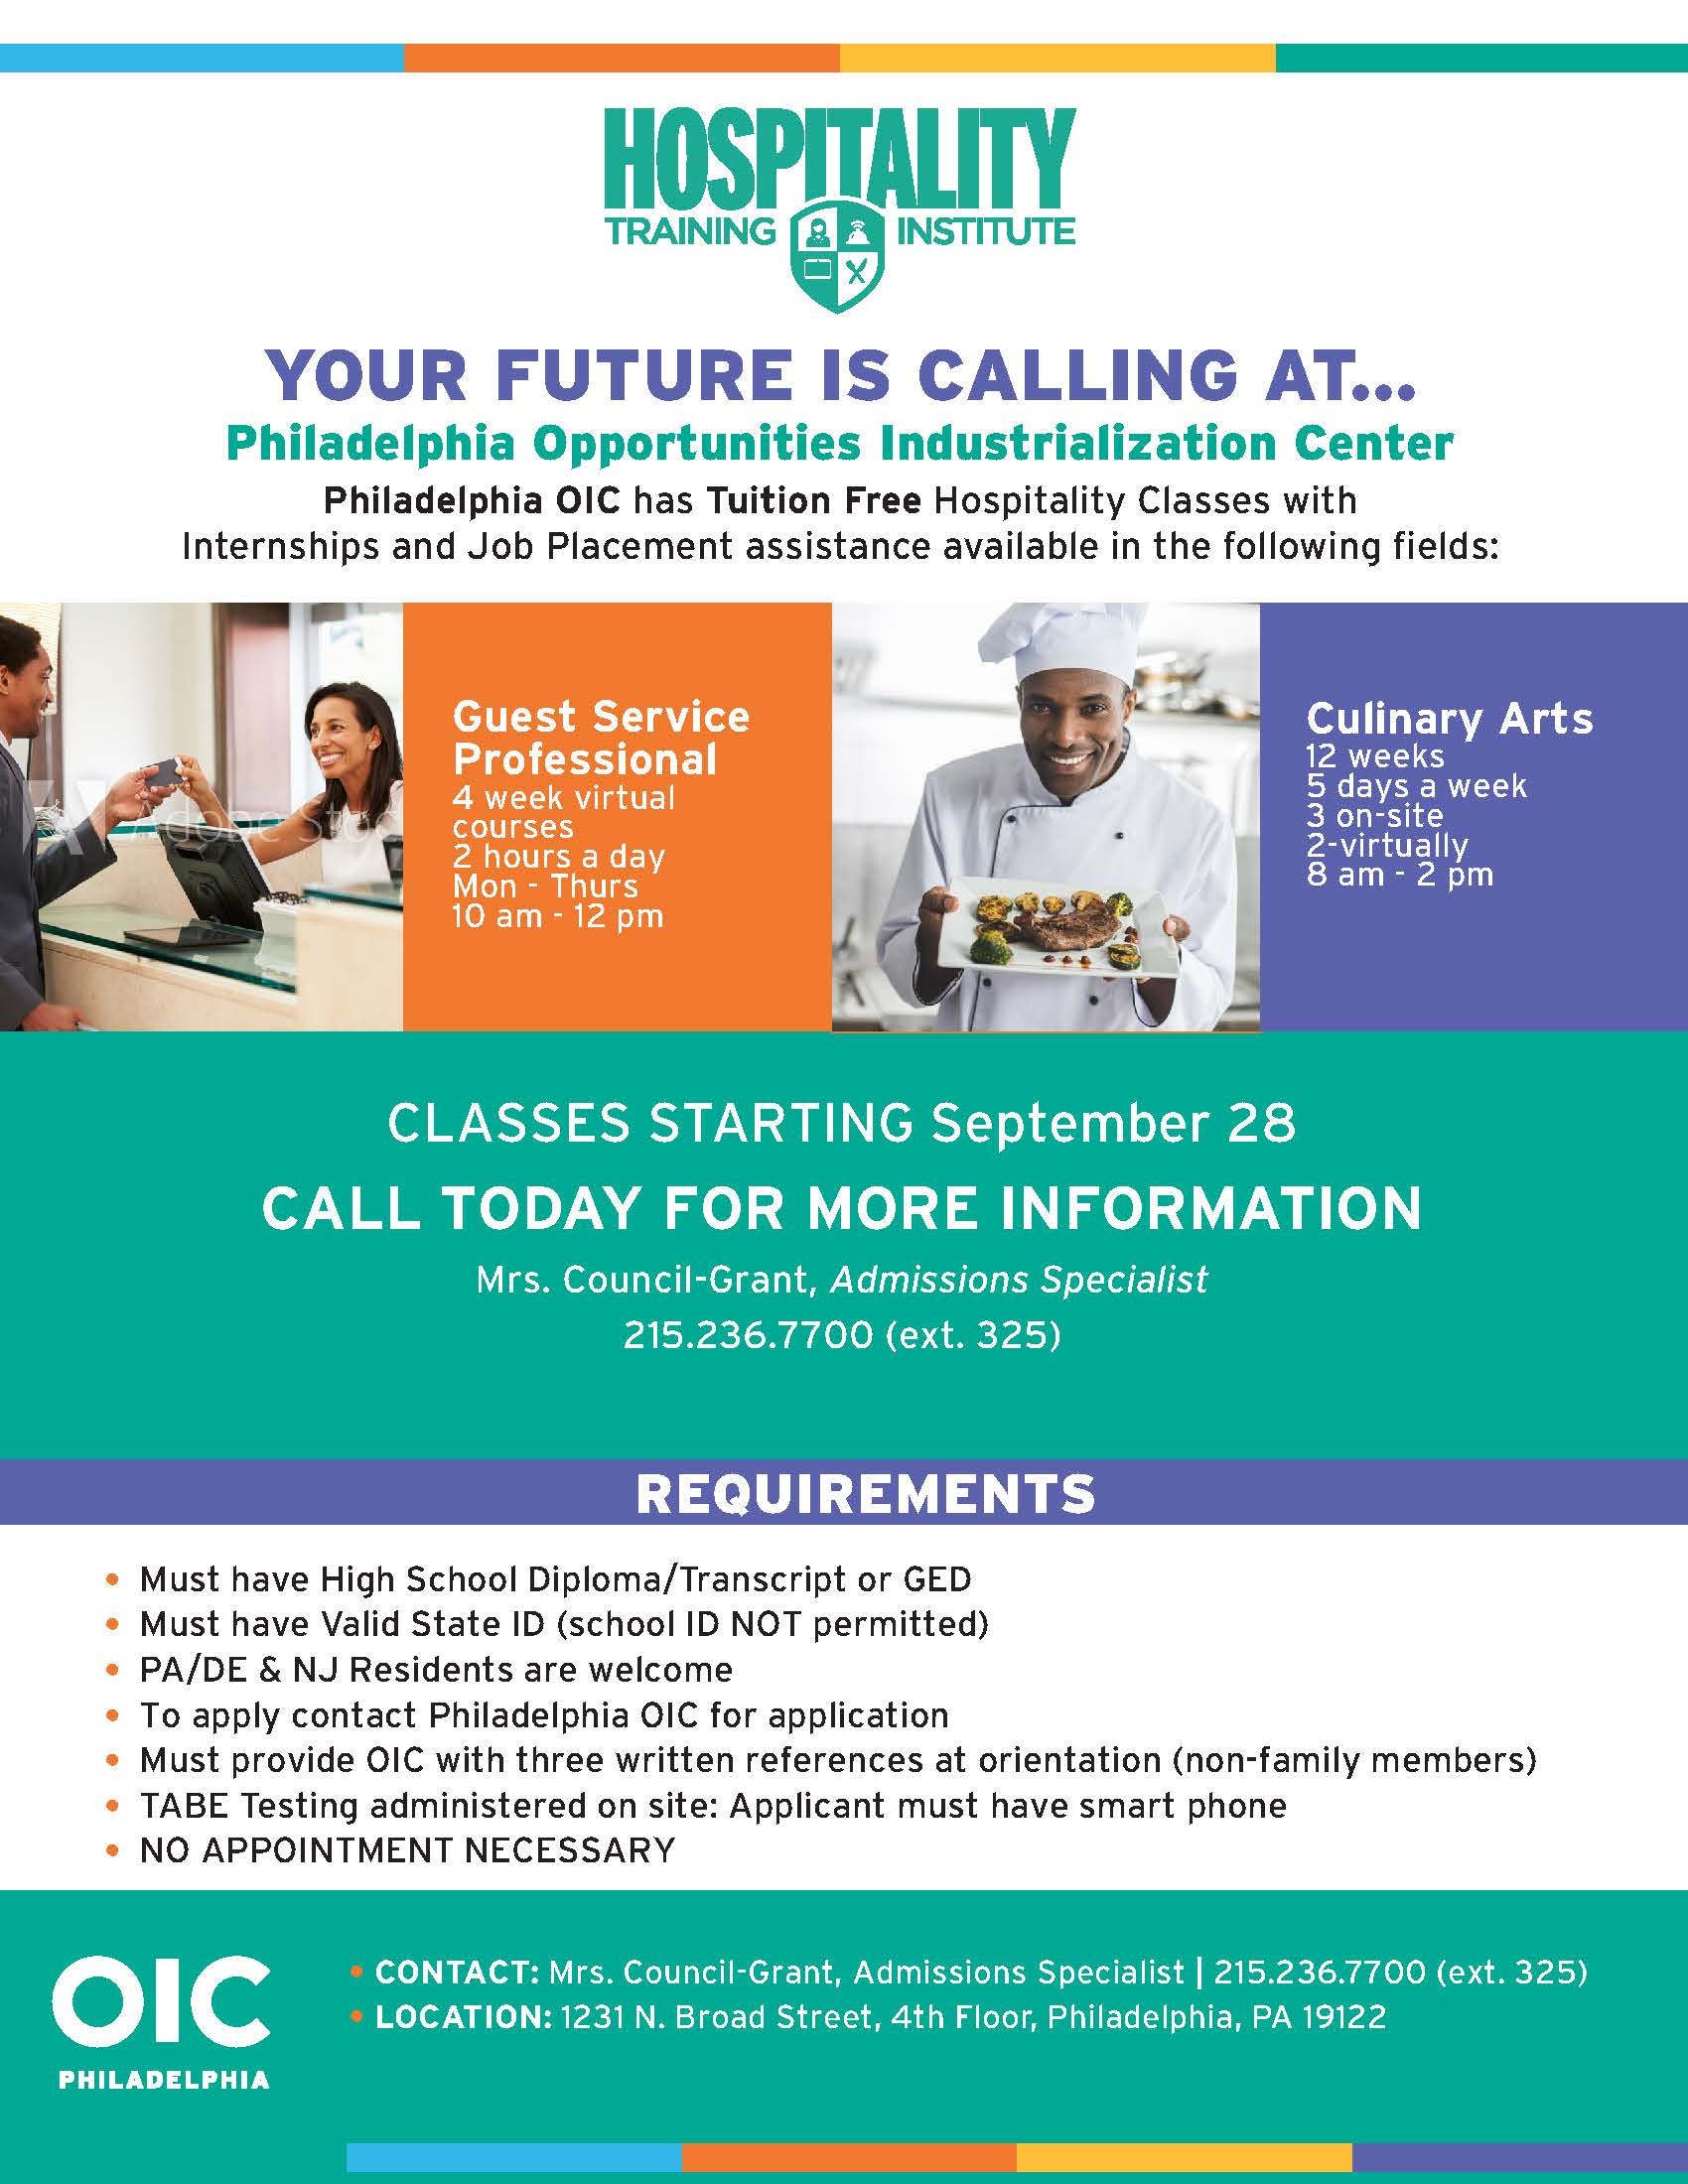 We are recruiting for our FREE Hospitality Training Institute! Classes start on October 5th!